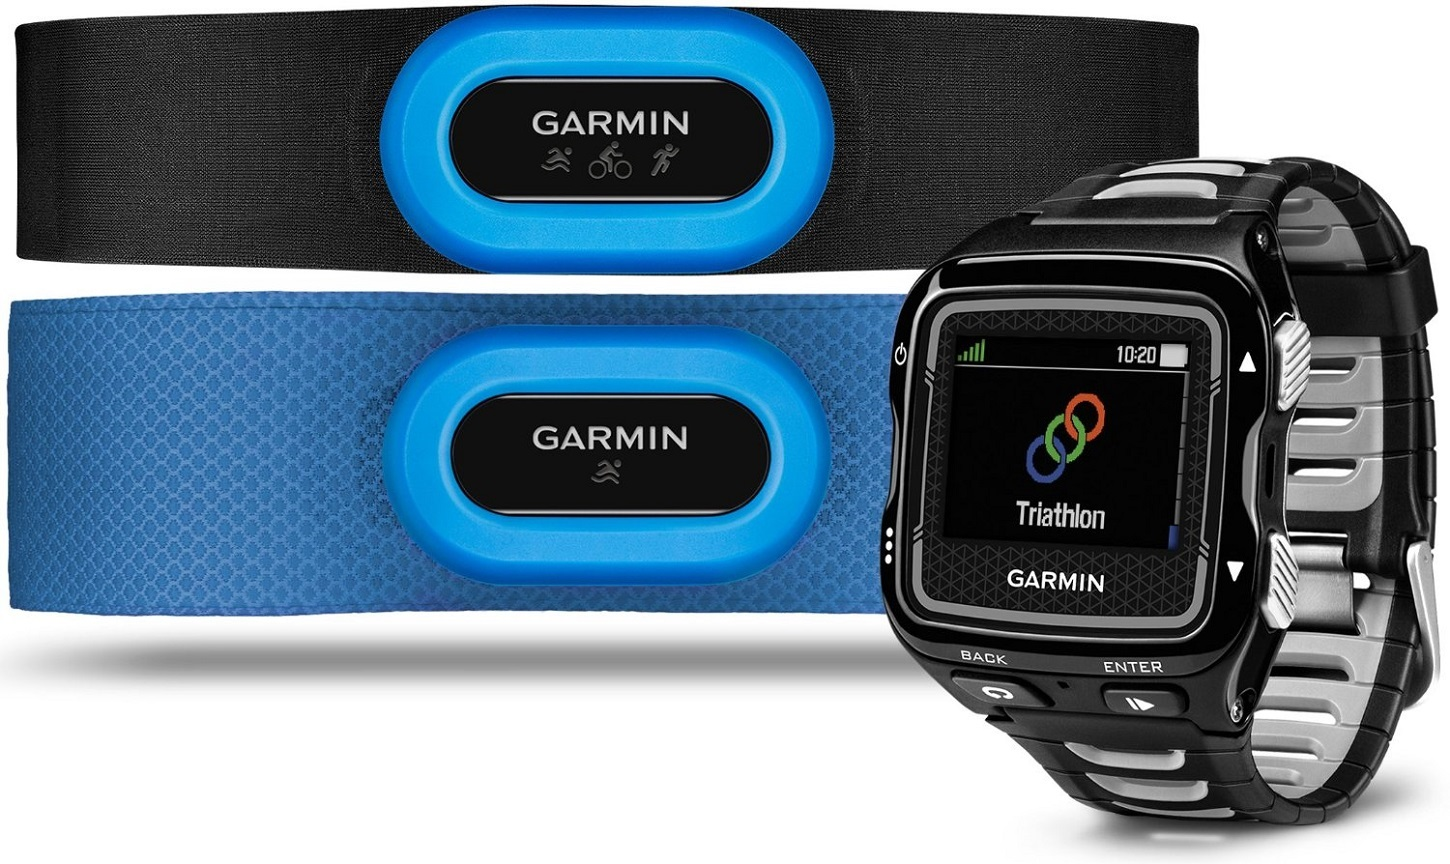 garmin forerunner 920xt tri bundle. Black Bedroom Furniture Sets. Home Design Ideas